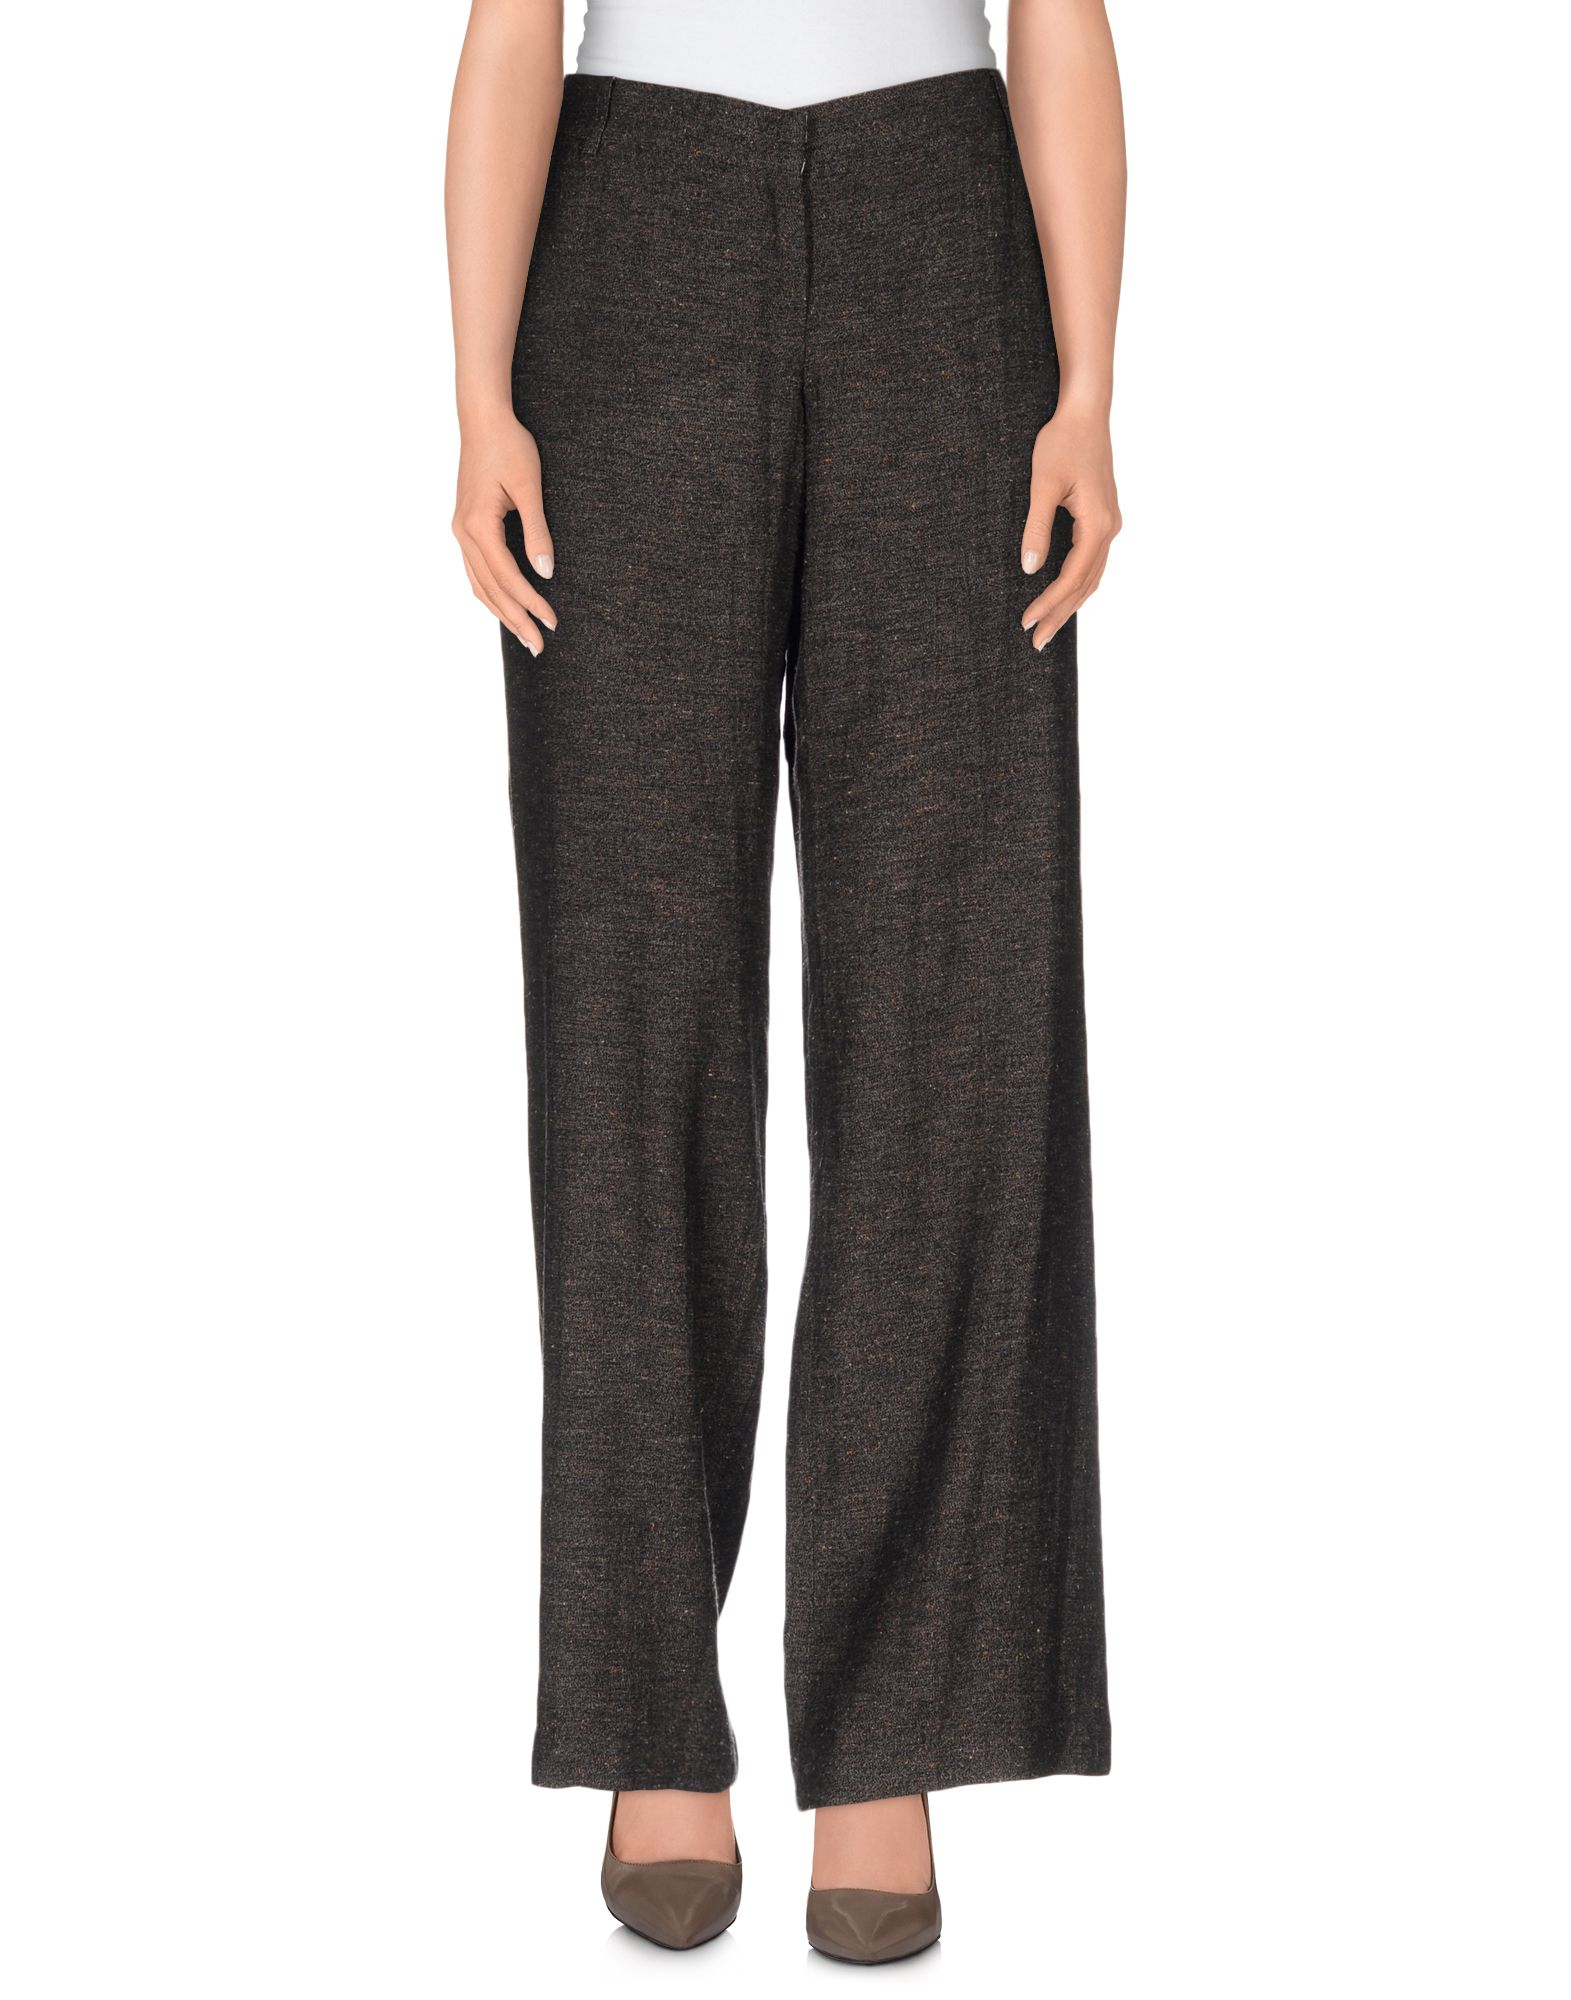 CARACTERE Women's Dark Brown Pinstriped Cropped Pants PA Sz 2 $ NEW. Sold by Walk Into Fashion + 7. $ TheMogan Basic Plain Stretch Crop Capri Leggings. Sold by TheMogan. $ $ Dennis Basso Pants Sz 8 Stretch Woven Cropped Pants Brown. Sold by Phoenix Trading Company.